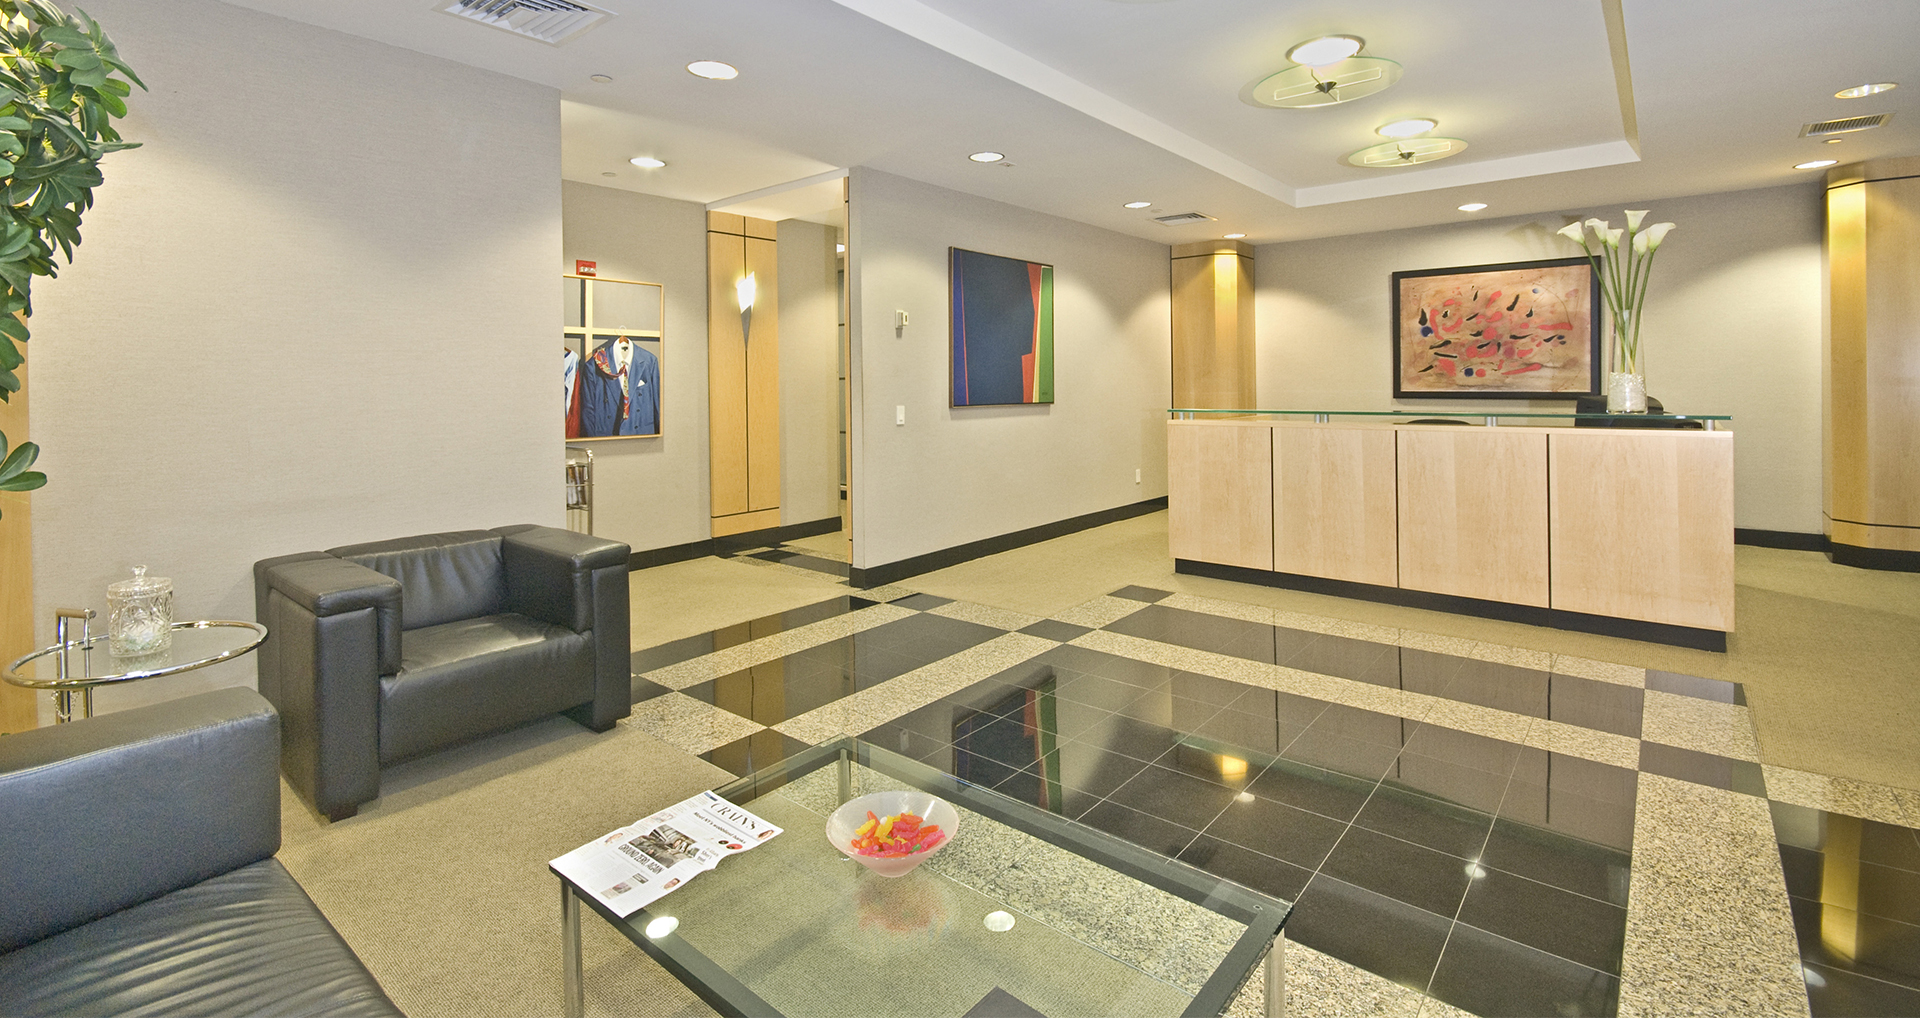 Bevmax Office Centers